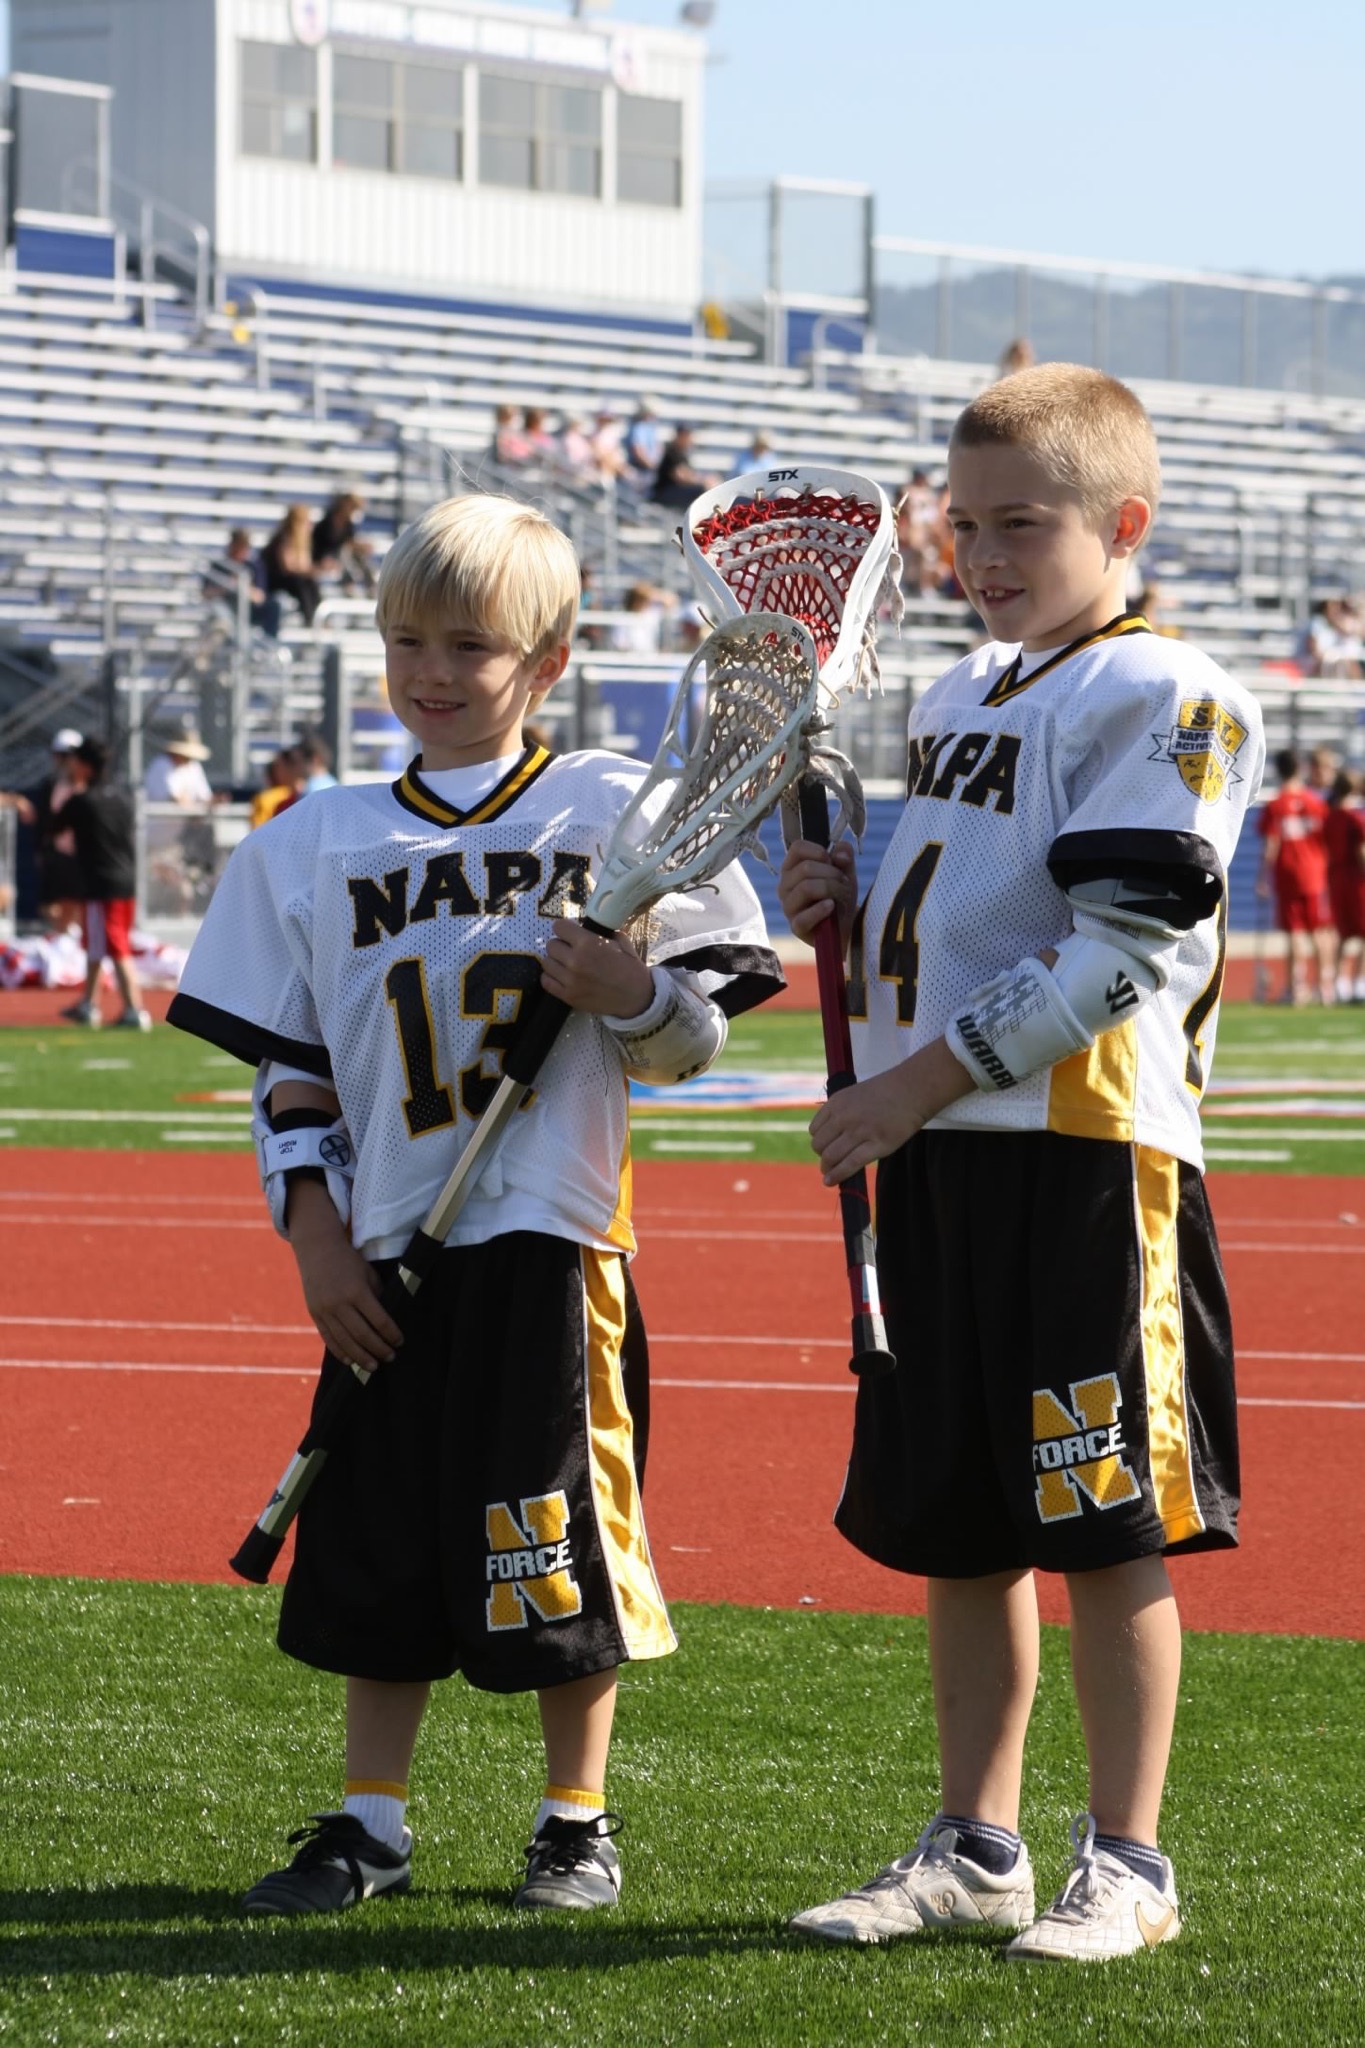 Jack (#14) & Bennett Goller (#13) started playing lacrosse together in Napa, CA